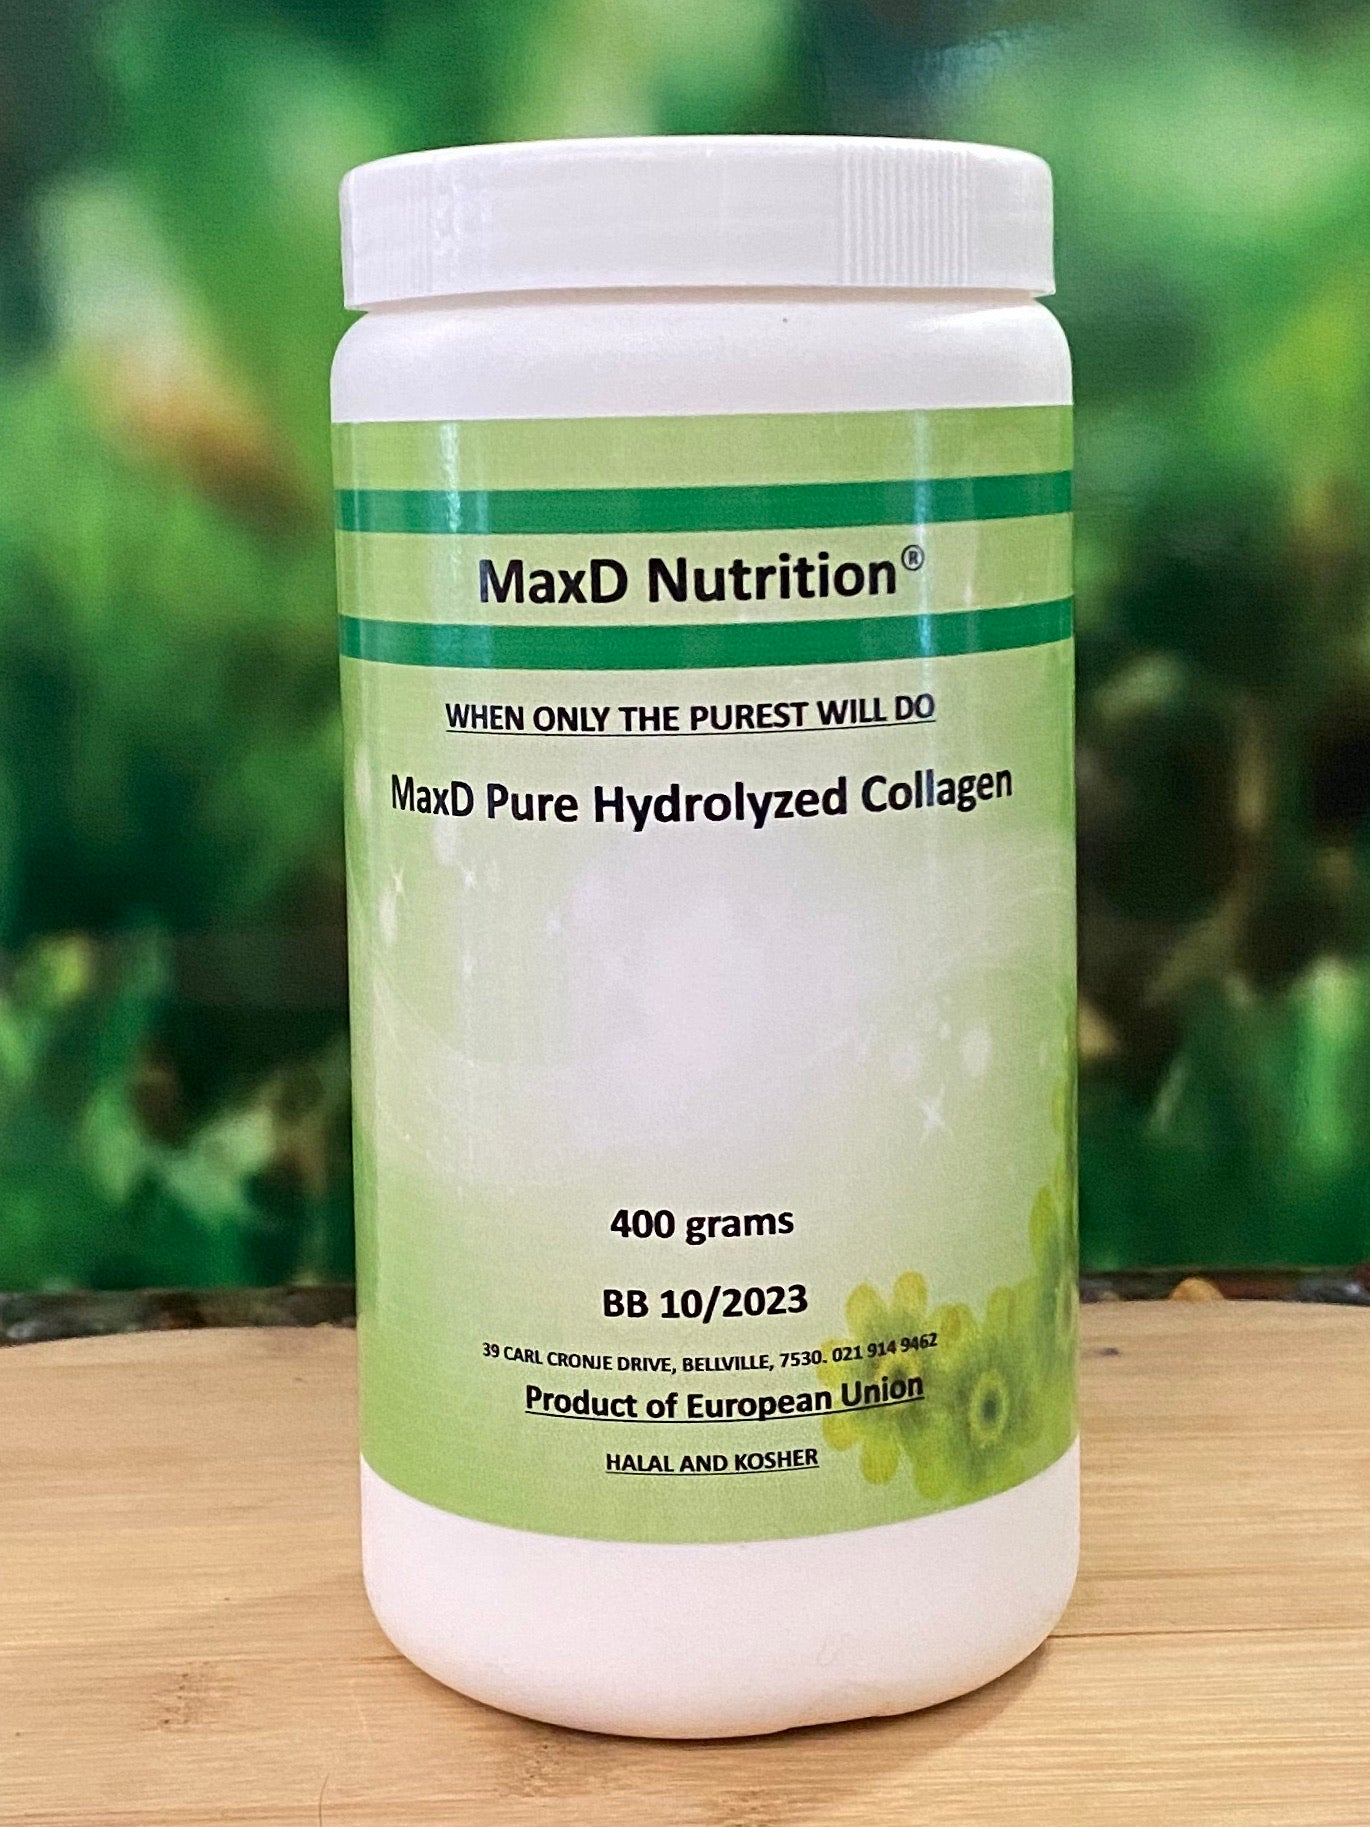 MaxD Pure Hydrolyzed Collagen 400g